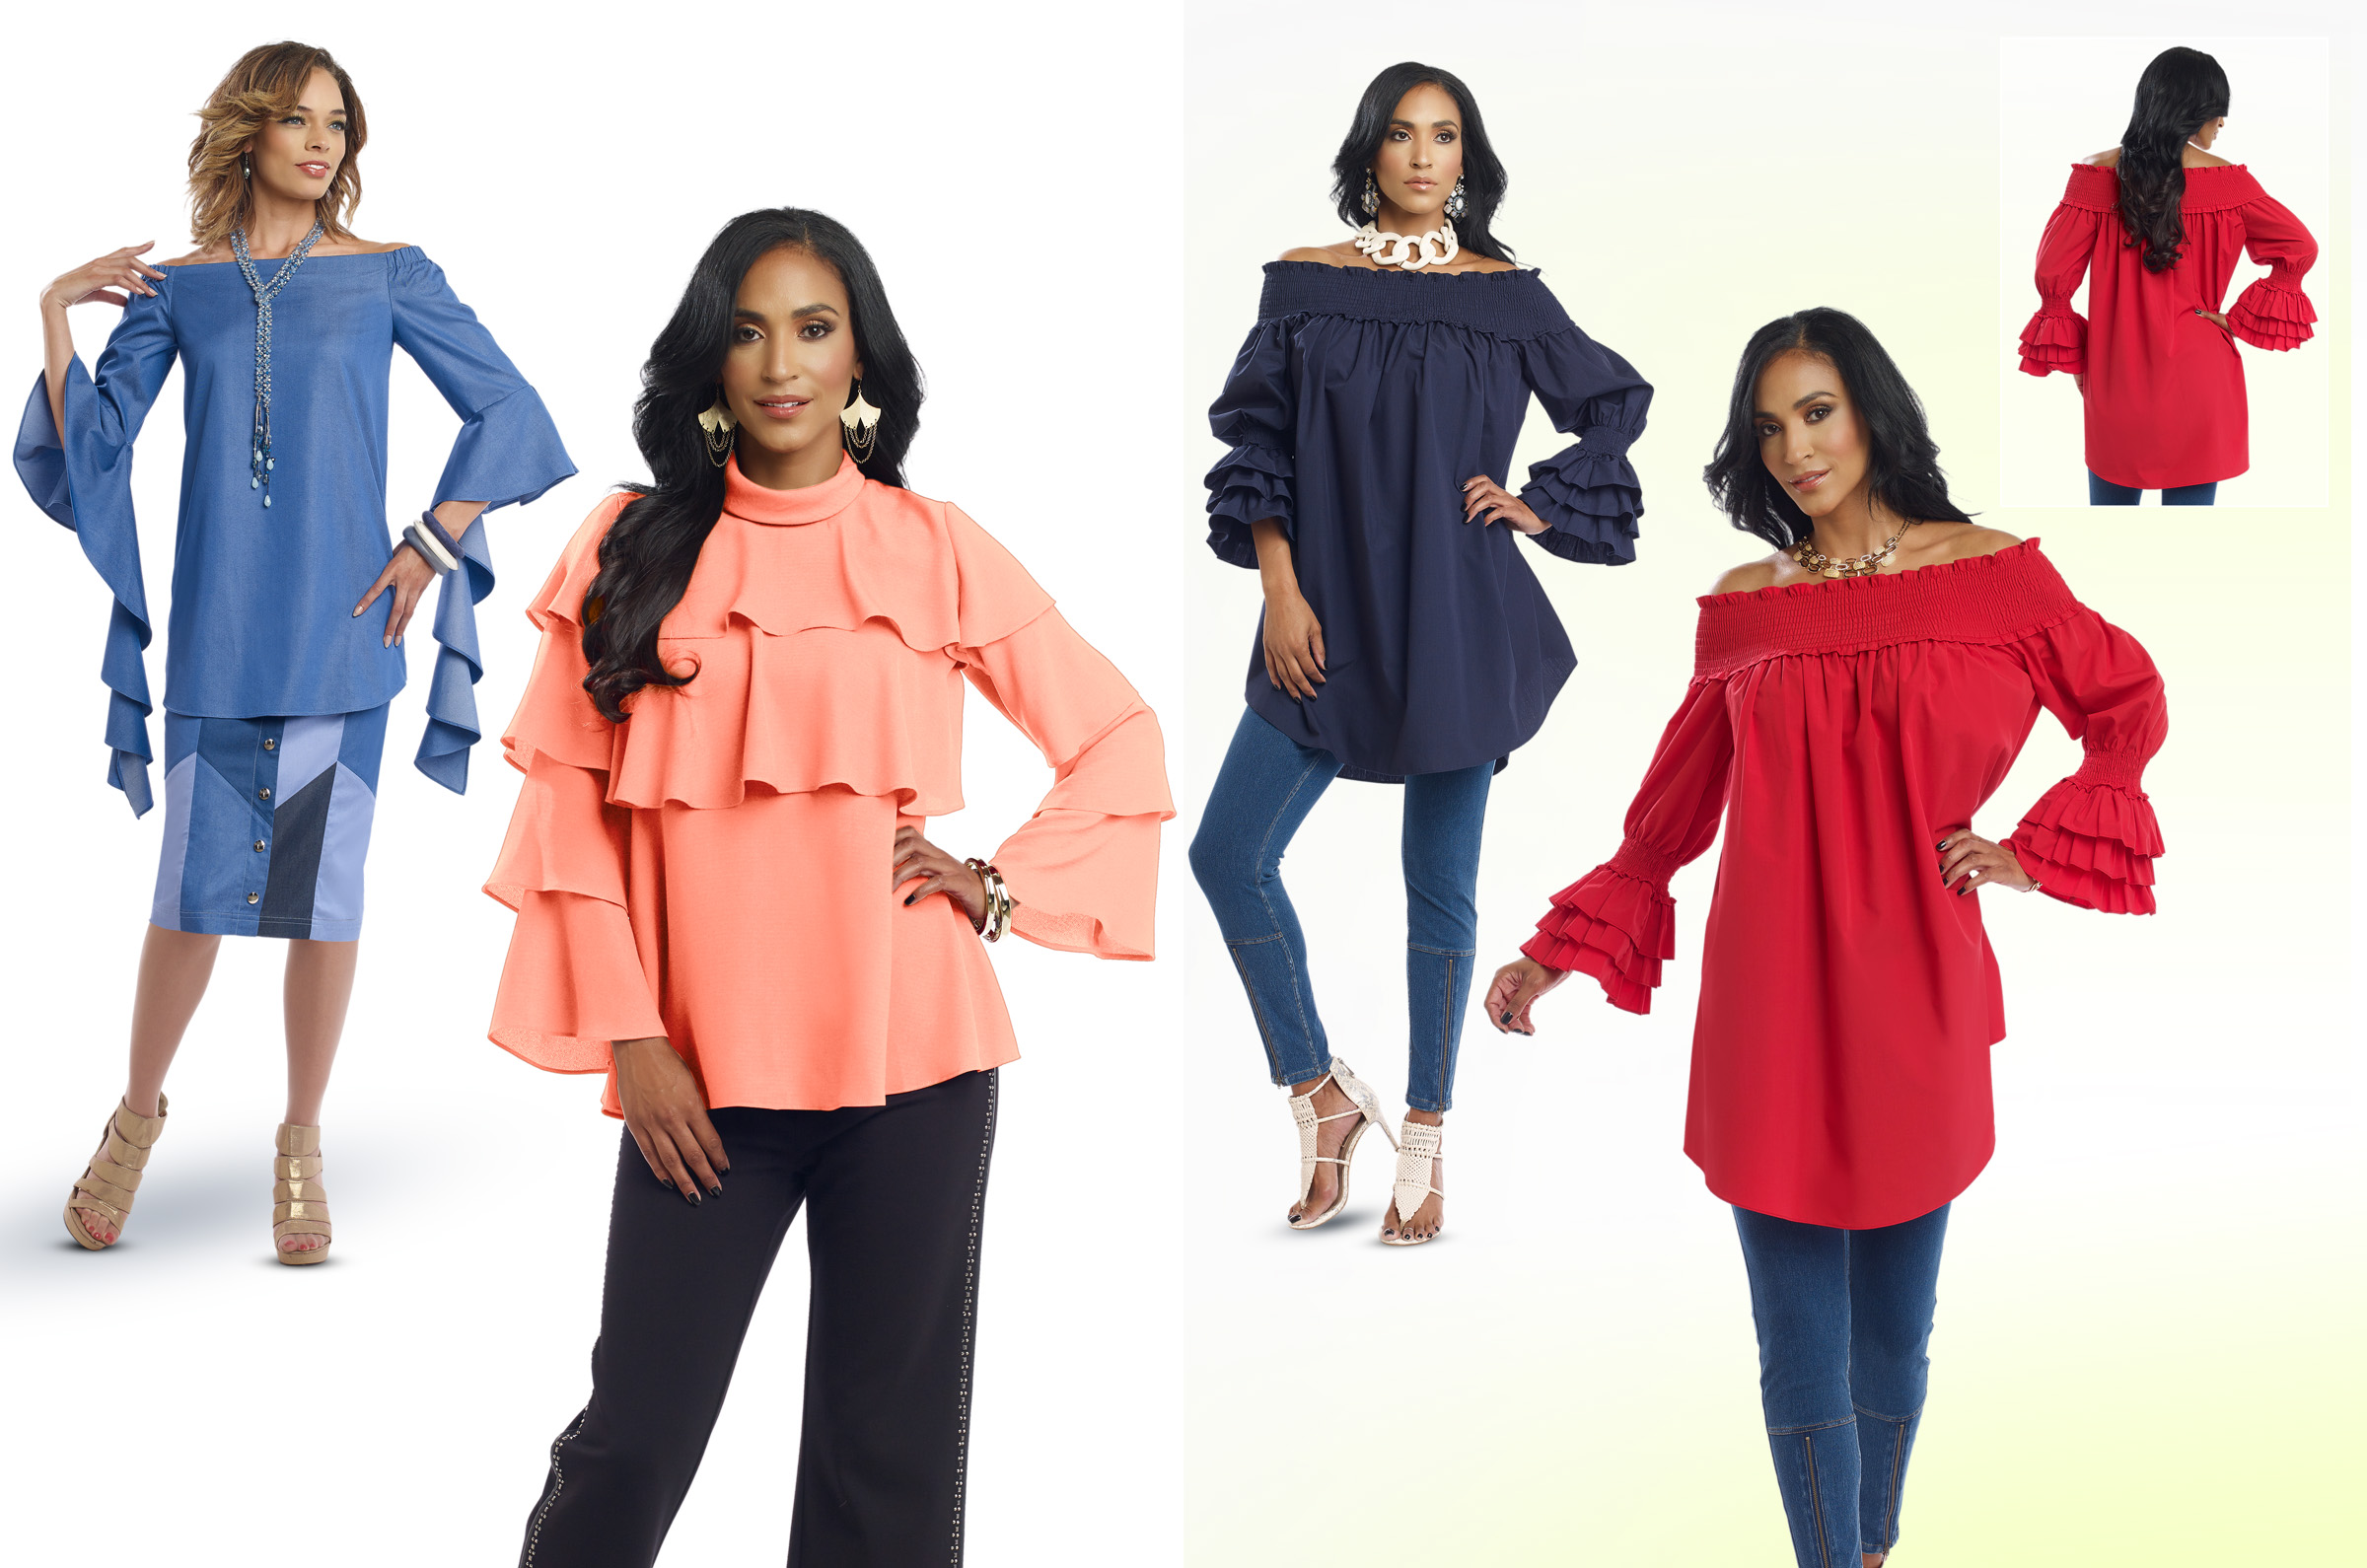 DONNA by Donna Vinci, Casual Knit Wear